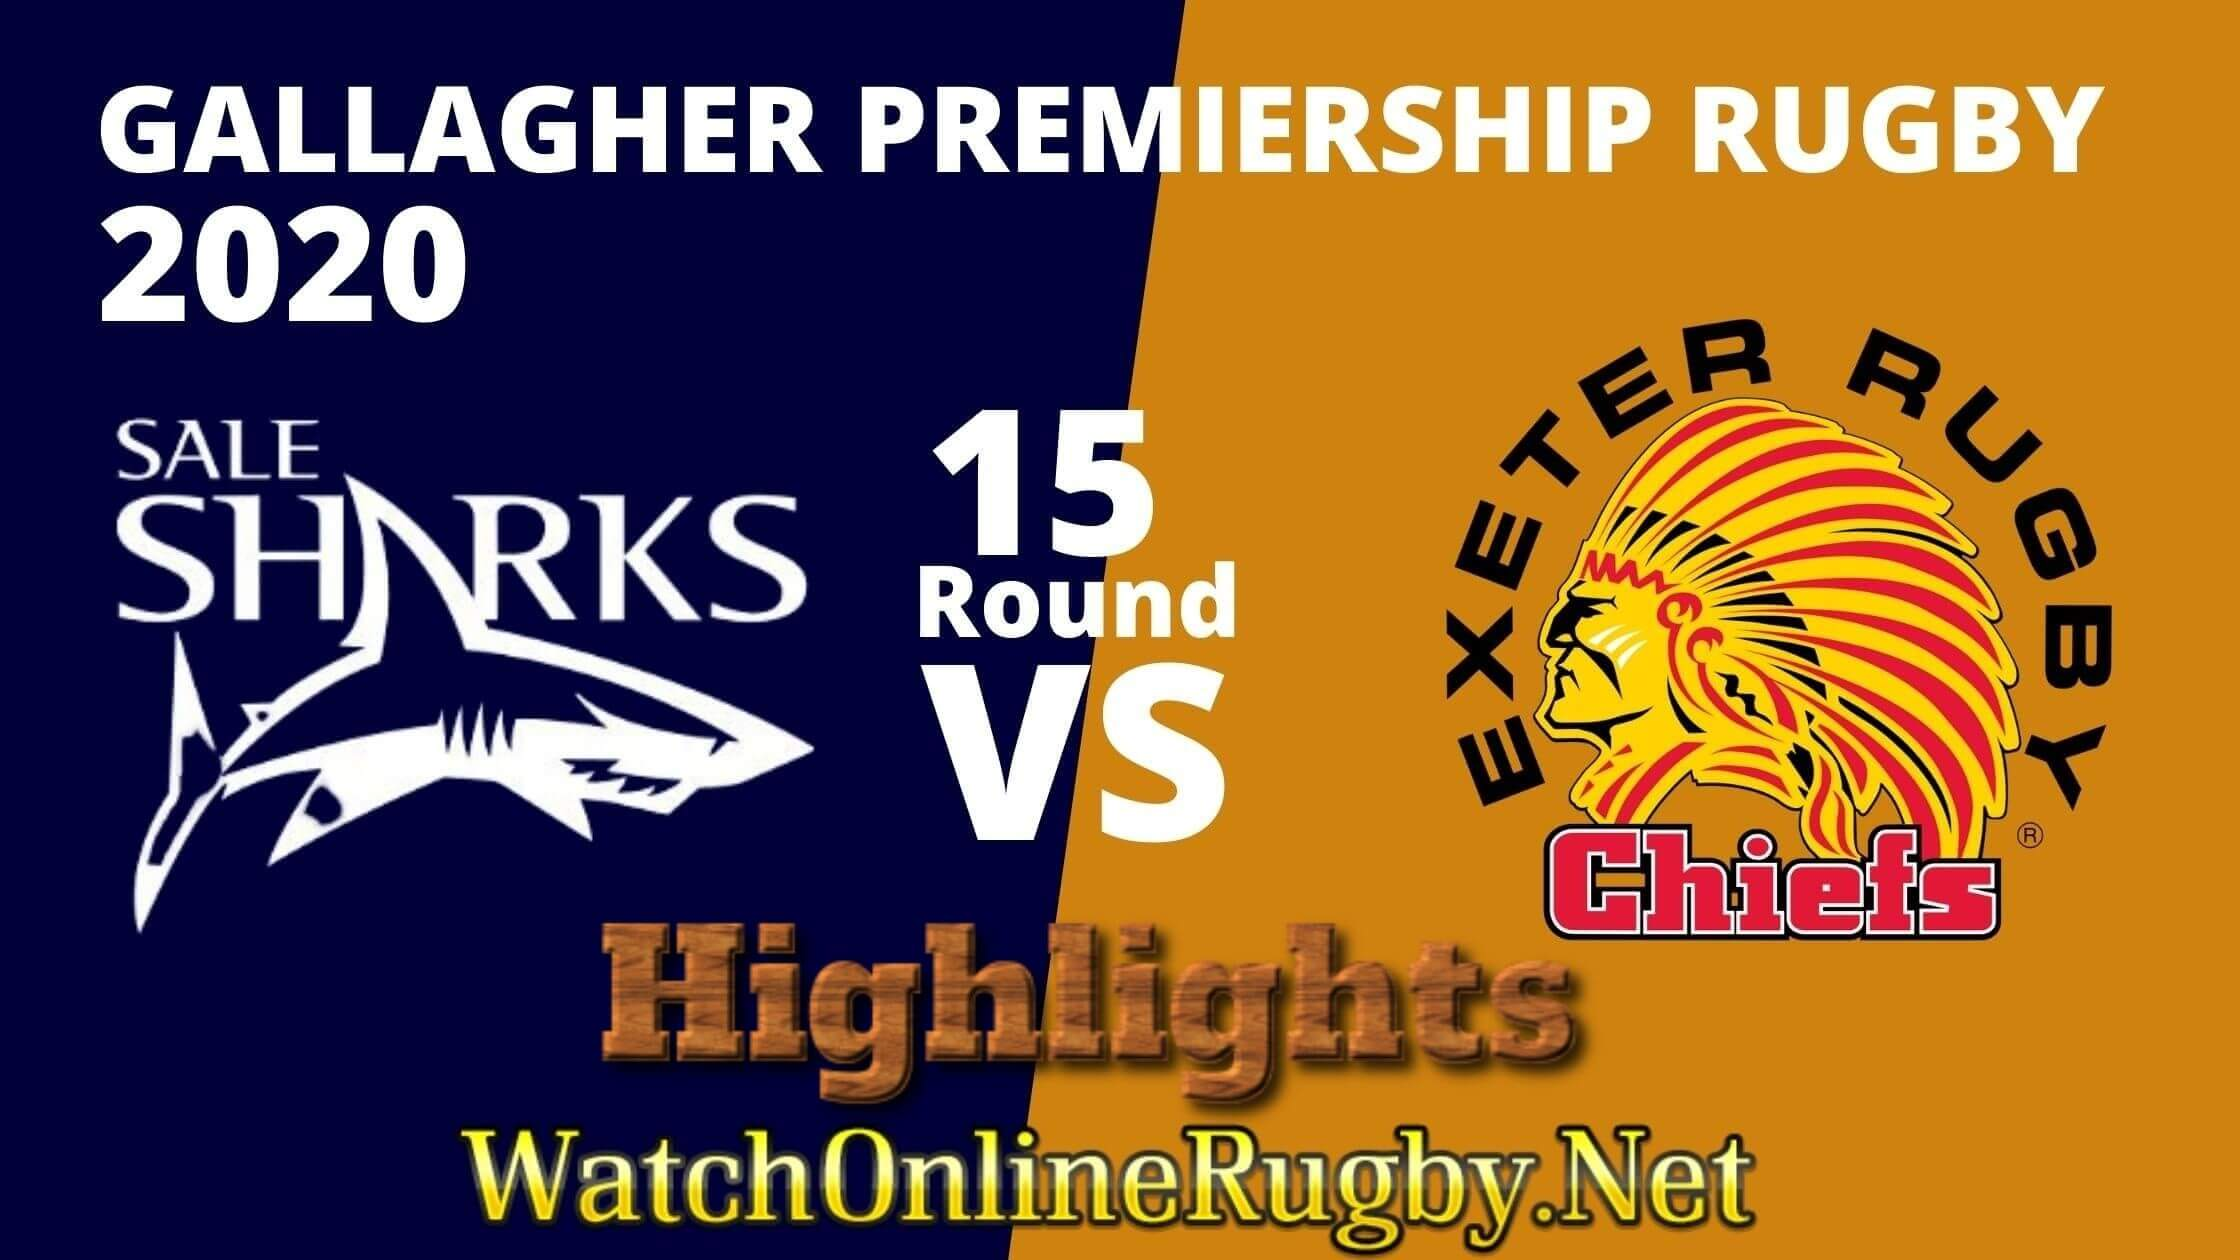 Sale Sharks Vs Exeter Chiefs Highlights 2020 Rd 15